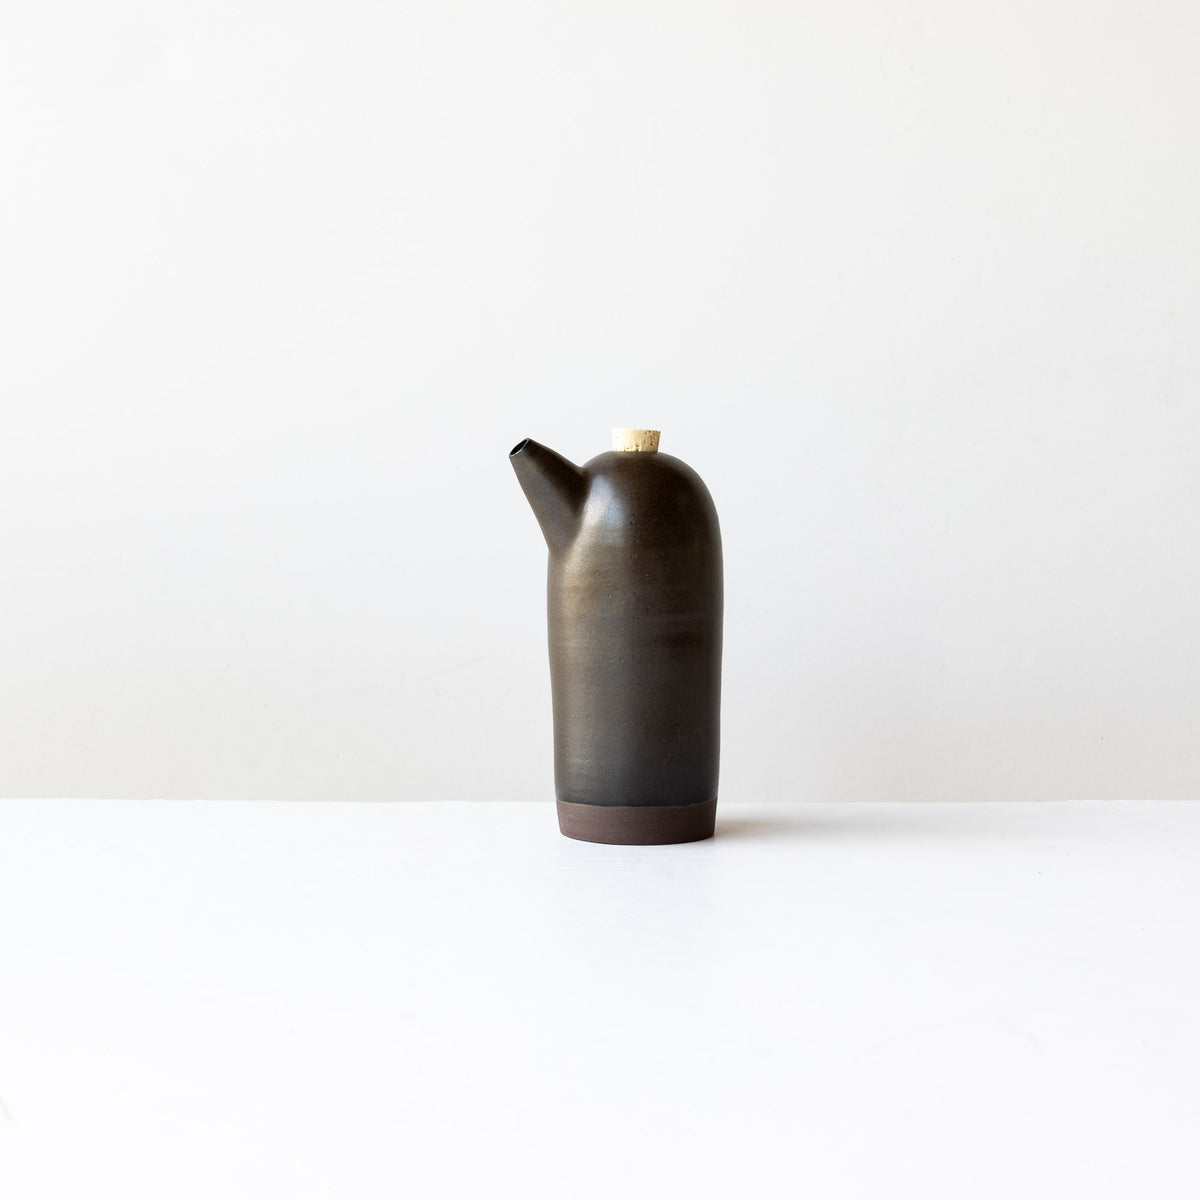 Black Handmade Stoneware Vinegar Bottle - Sold by Chic & Basta